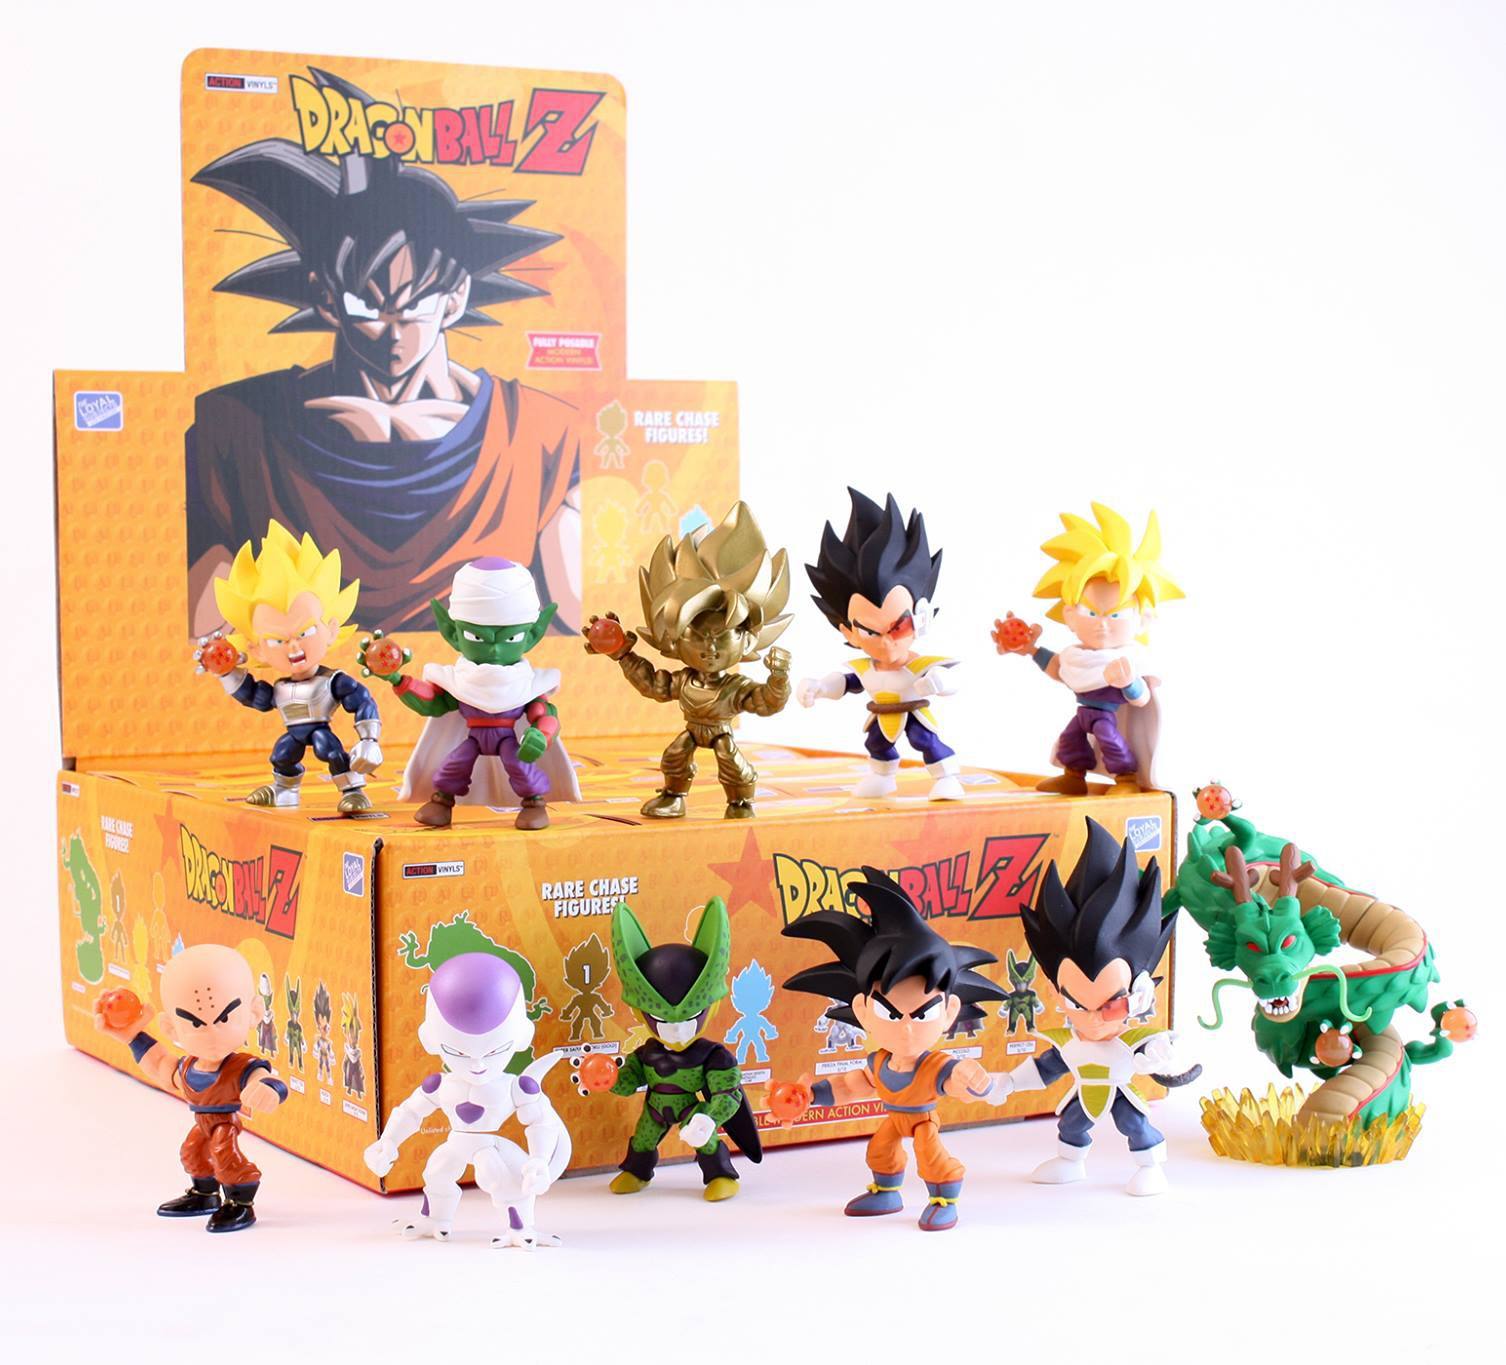 The Loyal Subjects Dragon Ball Z Action Vinyl Figure (Blind Boxed) image